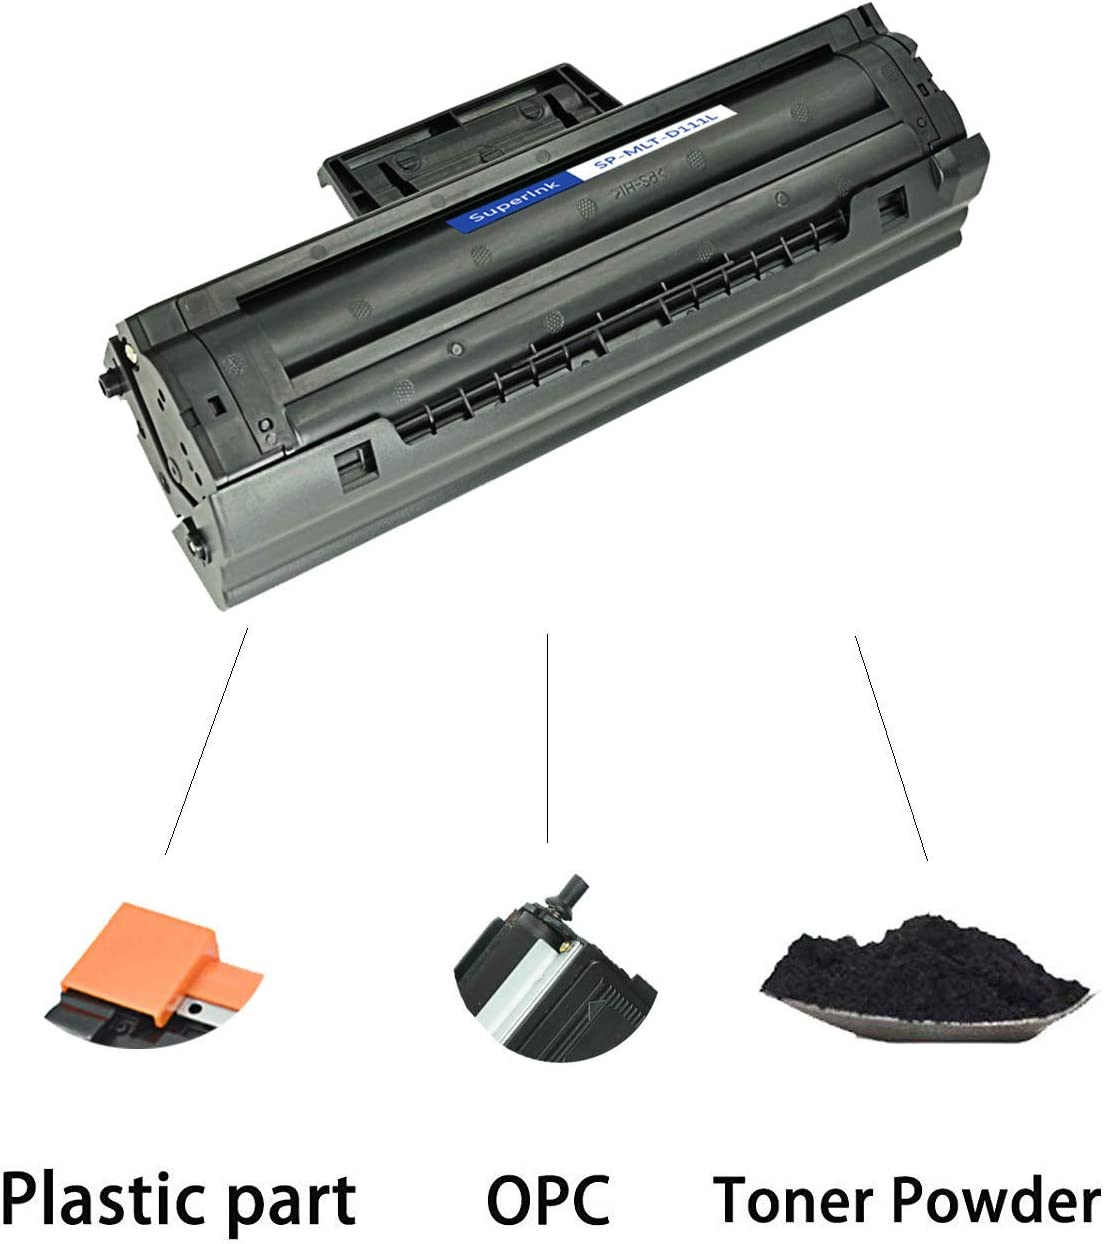 SuperInk High-Yield Compatible Toner Cartridge Replacement for Samsung MLT-D111L D111L to use with Xpress SL-M2020 SL-M2021W SL-M2022 SL-M2070W SL-M2071 SL-M2074FW SL-M2026 Printer Black, 1-Pack